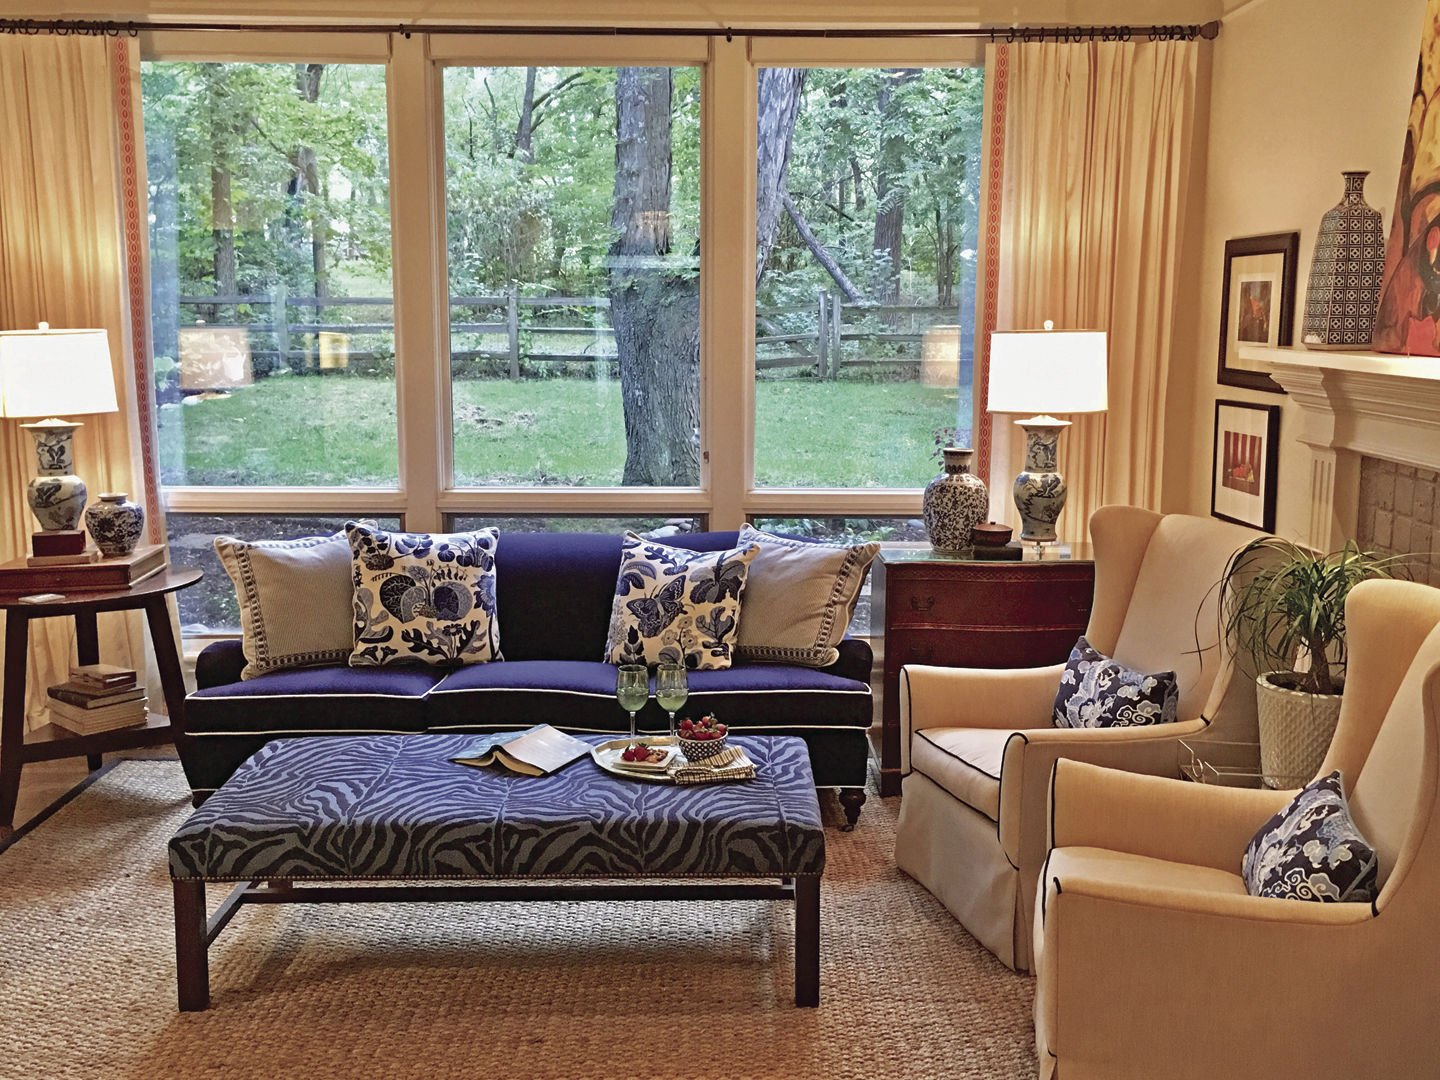 ATHOME STYLEATHOME DOGFRIENDLY FURNITURE 3 MCT